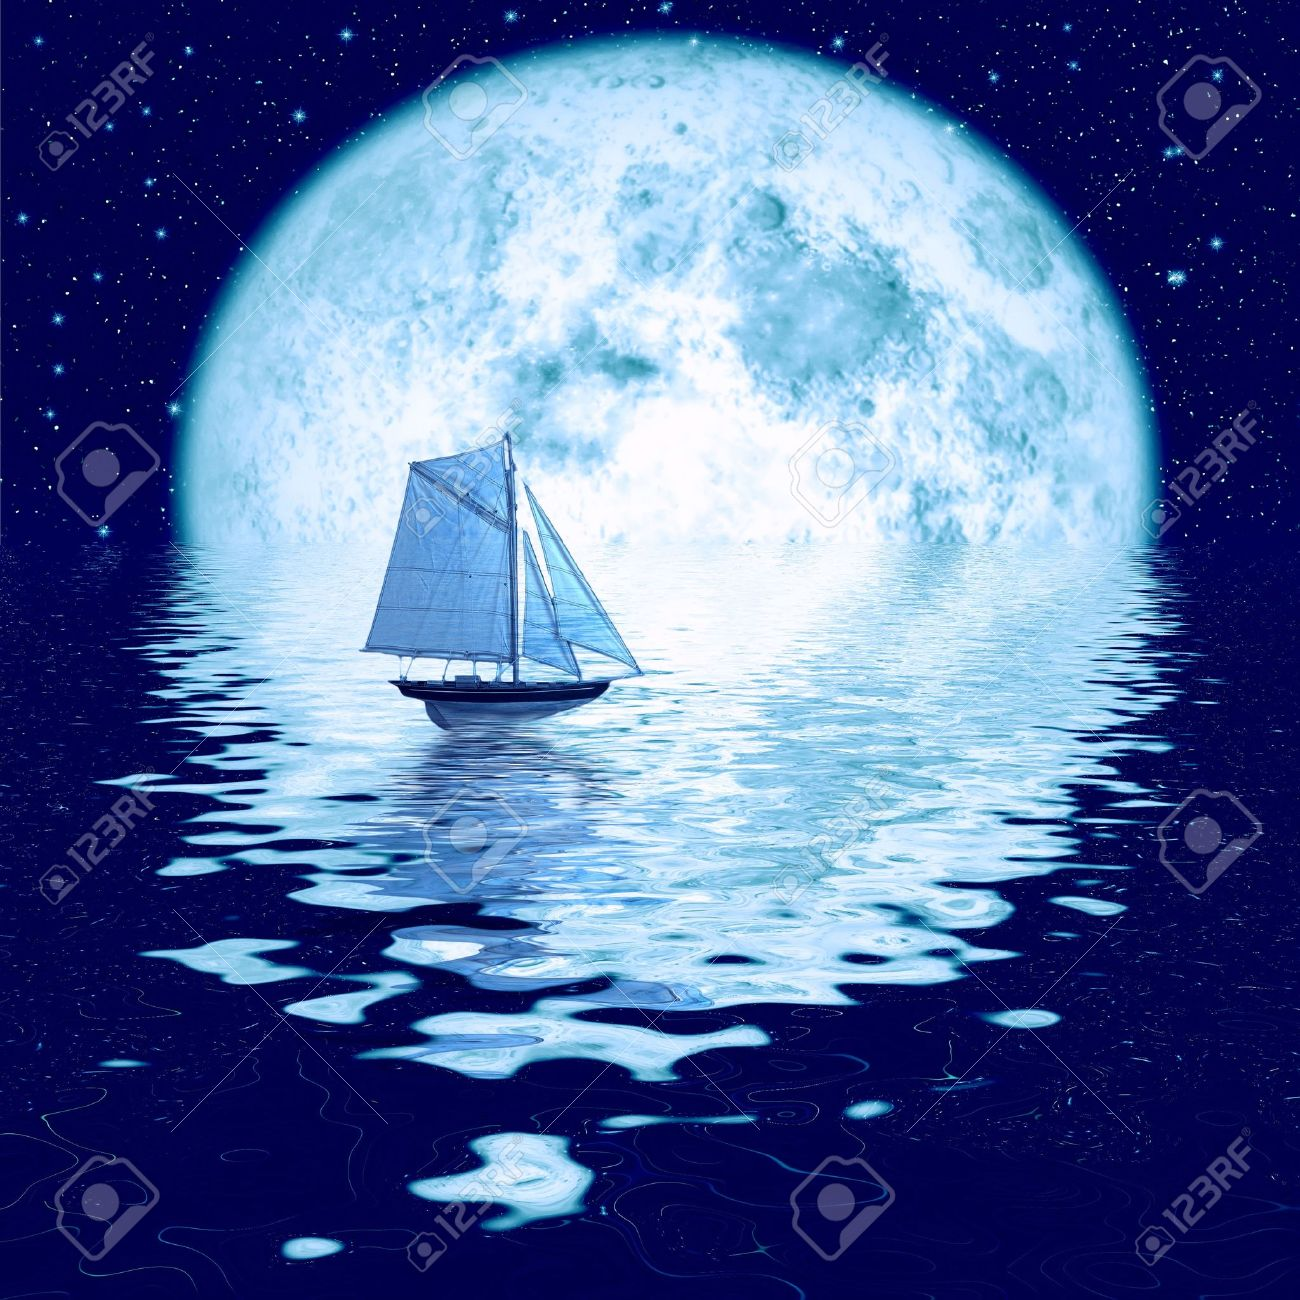 Beautiful full moon under ocean with sailing ship Stock Photo - 4555263